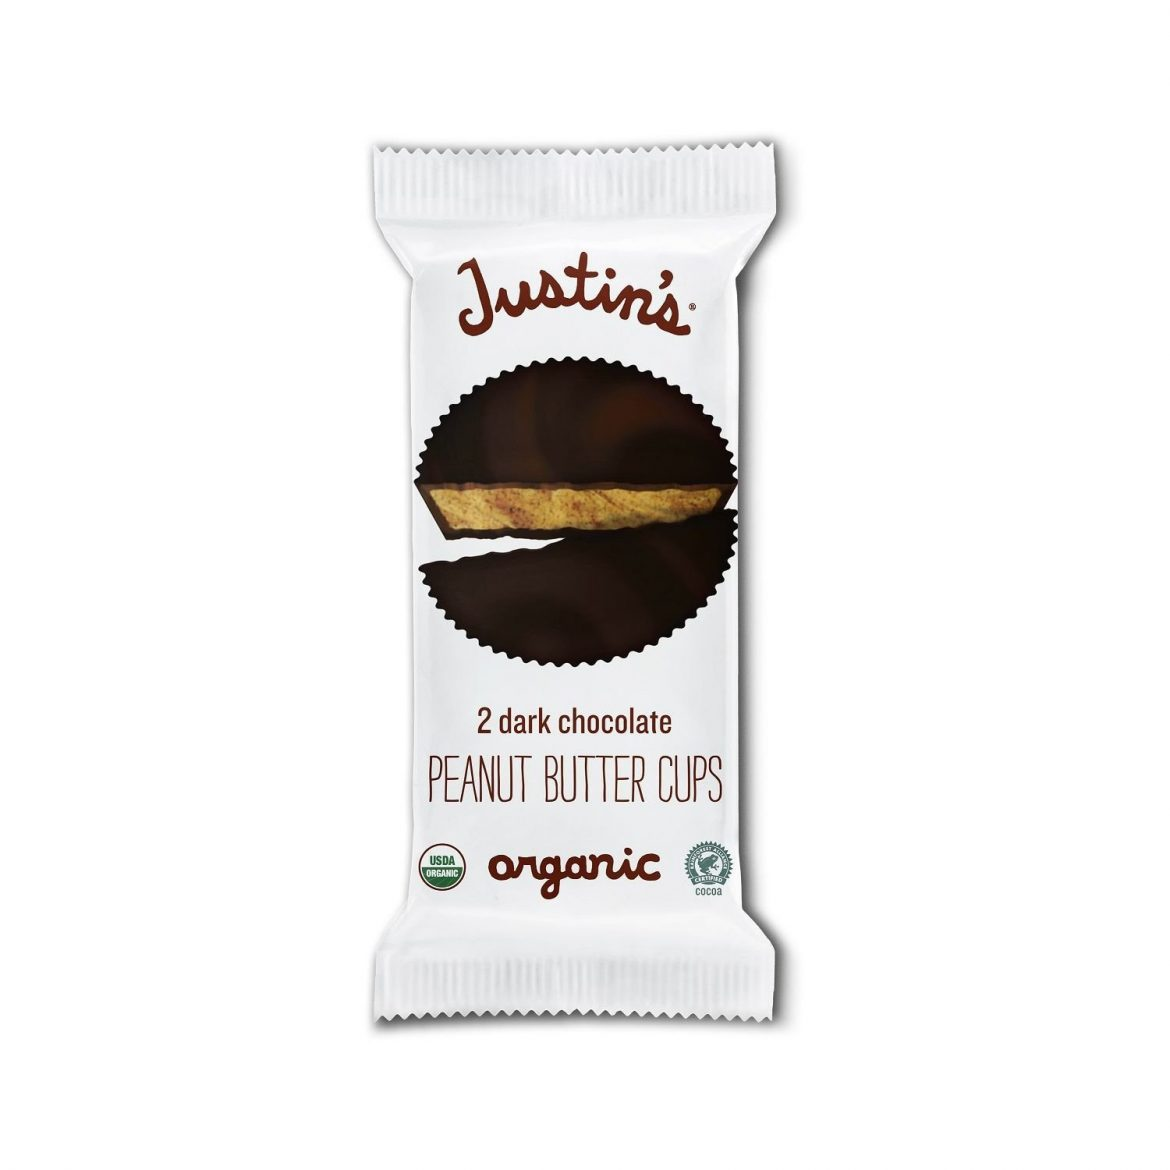 Justin's Peanut Butter Cups just .75 at Kroger